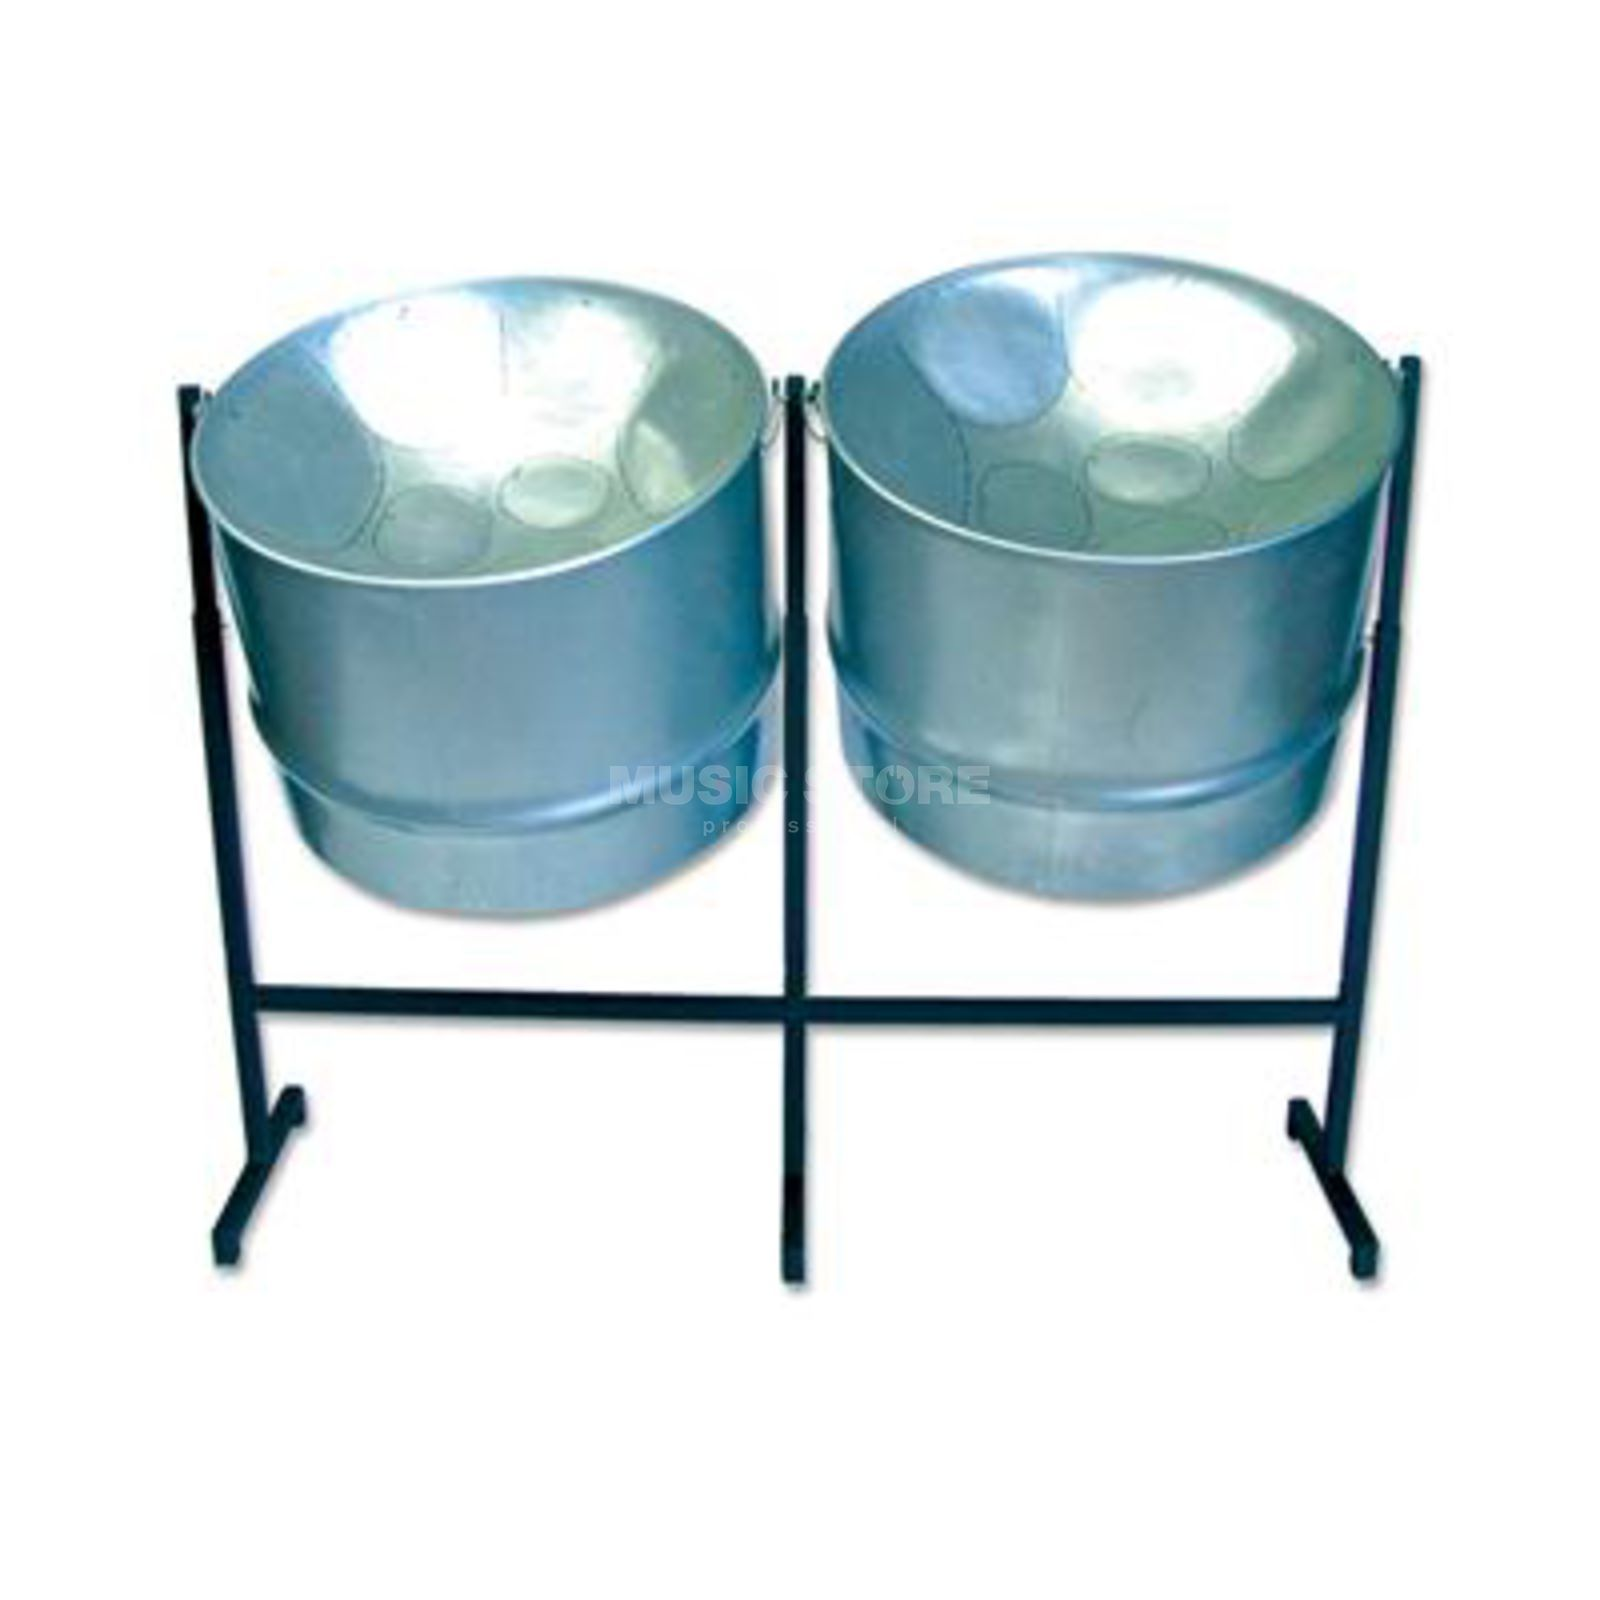 Percussion Plus Steelpan Double Guitar PP444 Produktbild